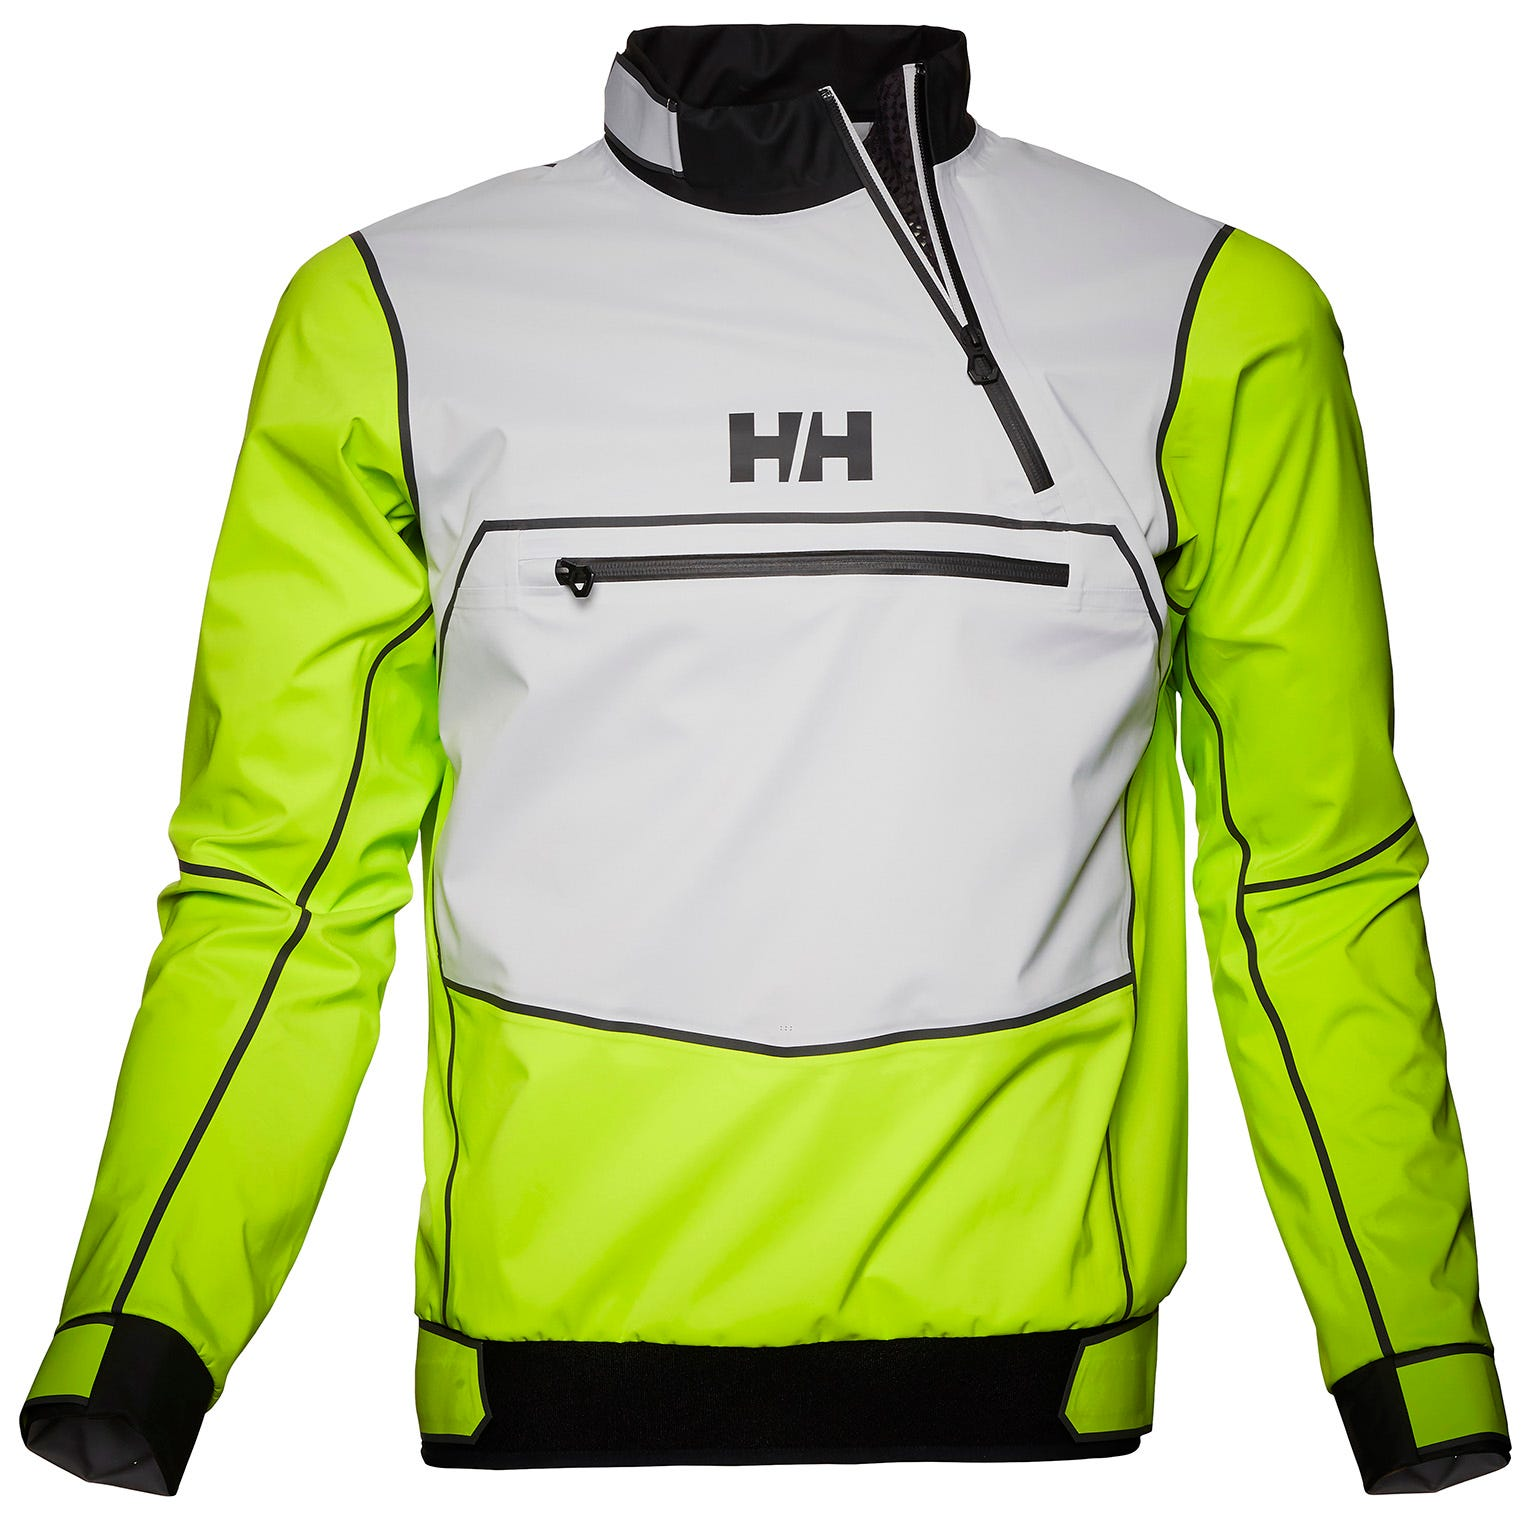 Helly Hansen Mens Hp Foil Pro Smock Top Sailing Jacket Green XL